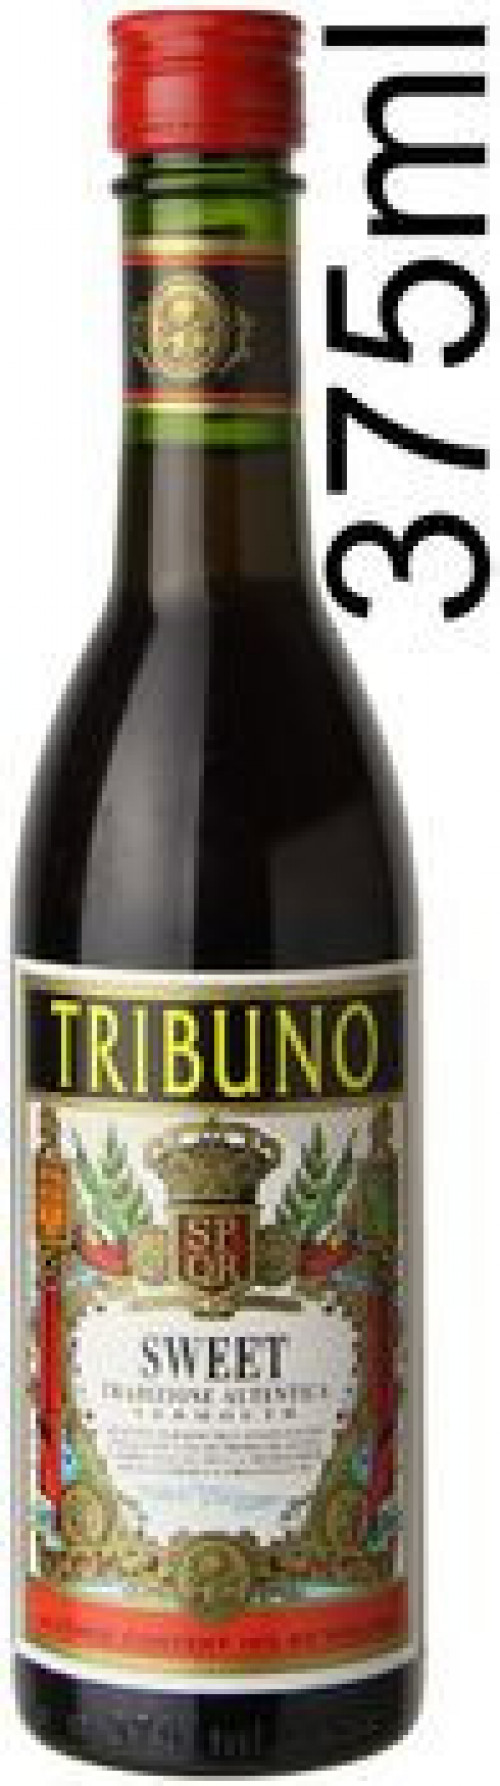 Tribuno Sweet Vermouth 375ml